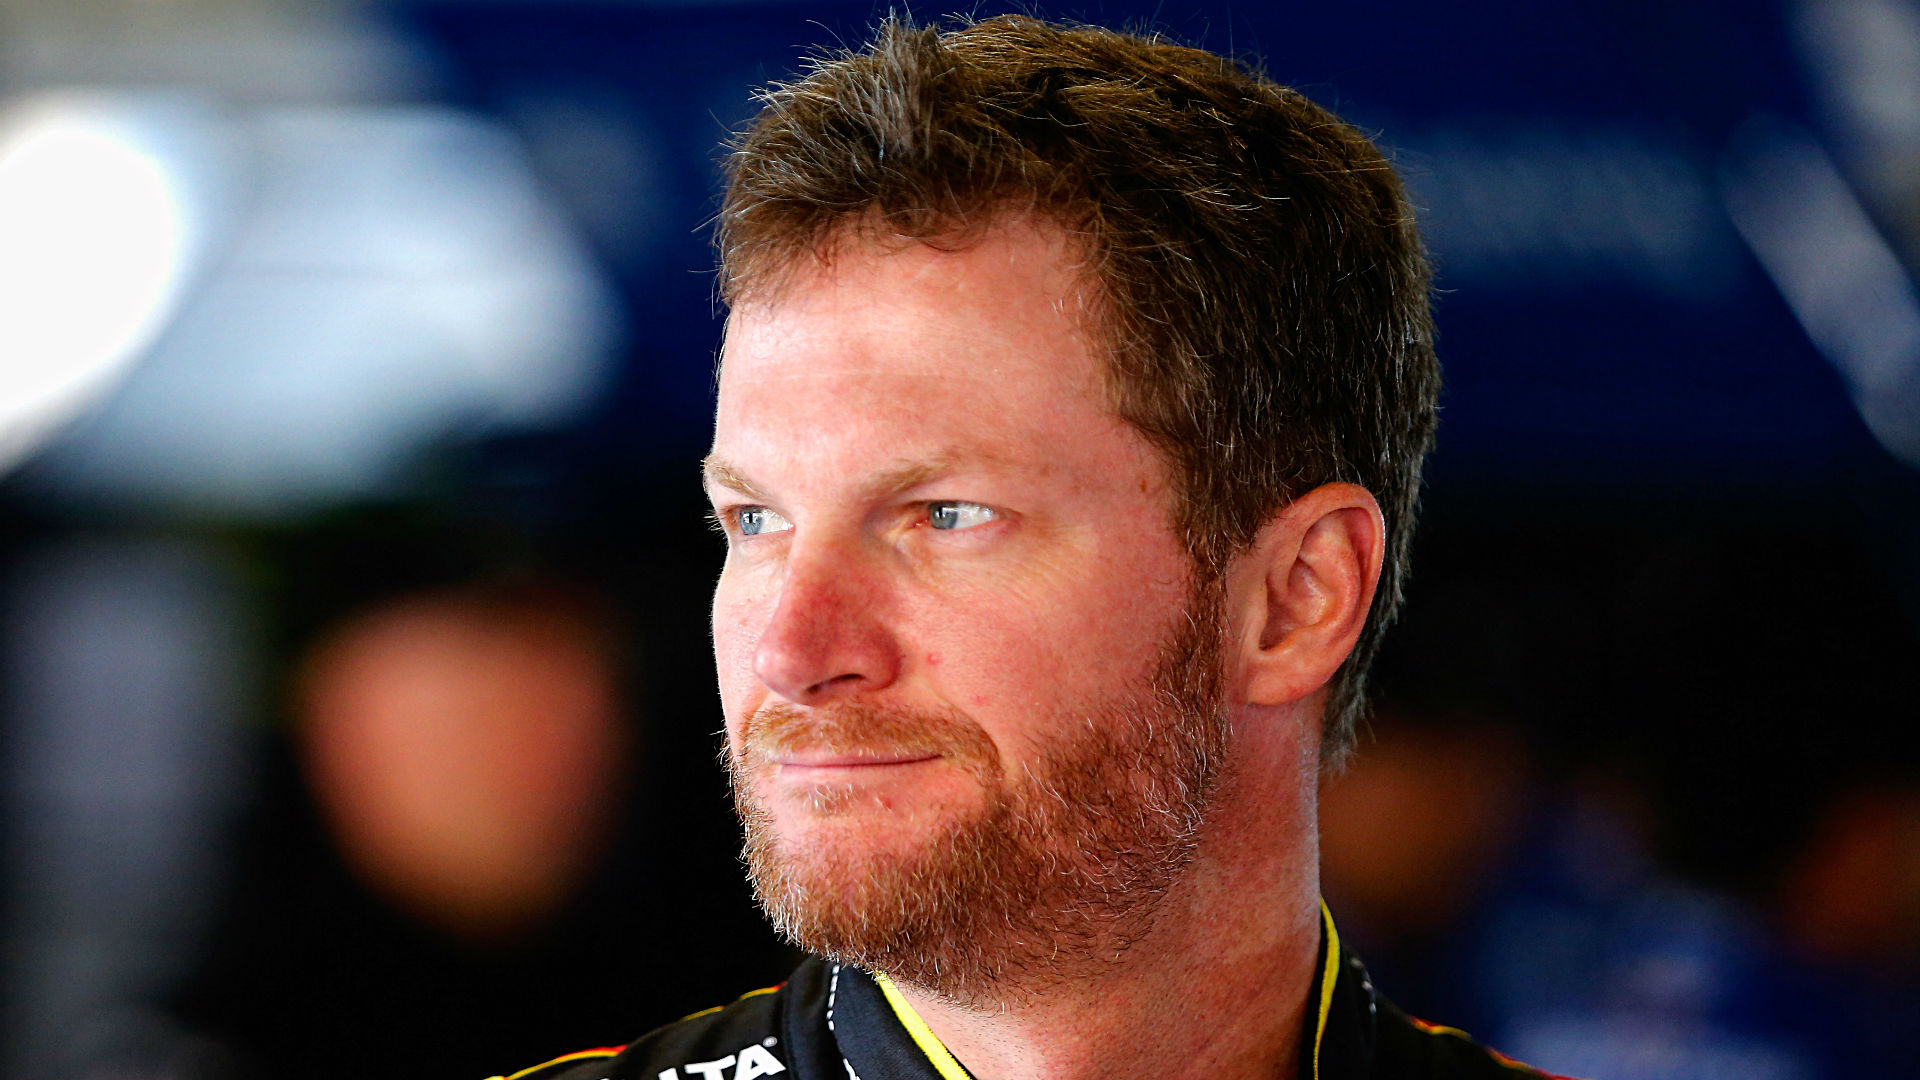 Dale Earnhardt Jr. sends powerful message amid NASCAR's involvement in protest debate